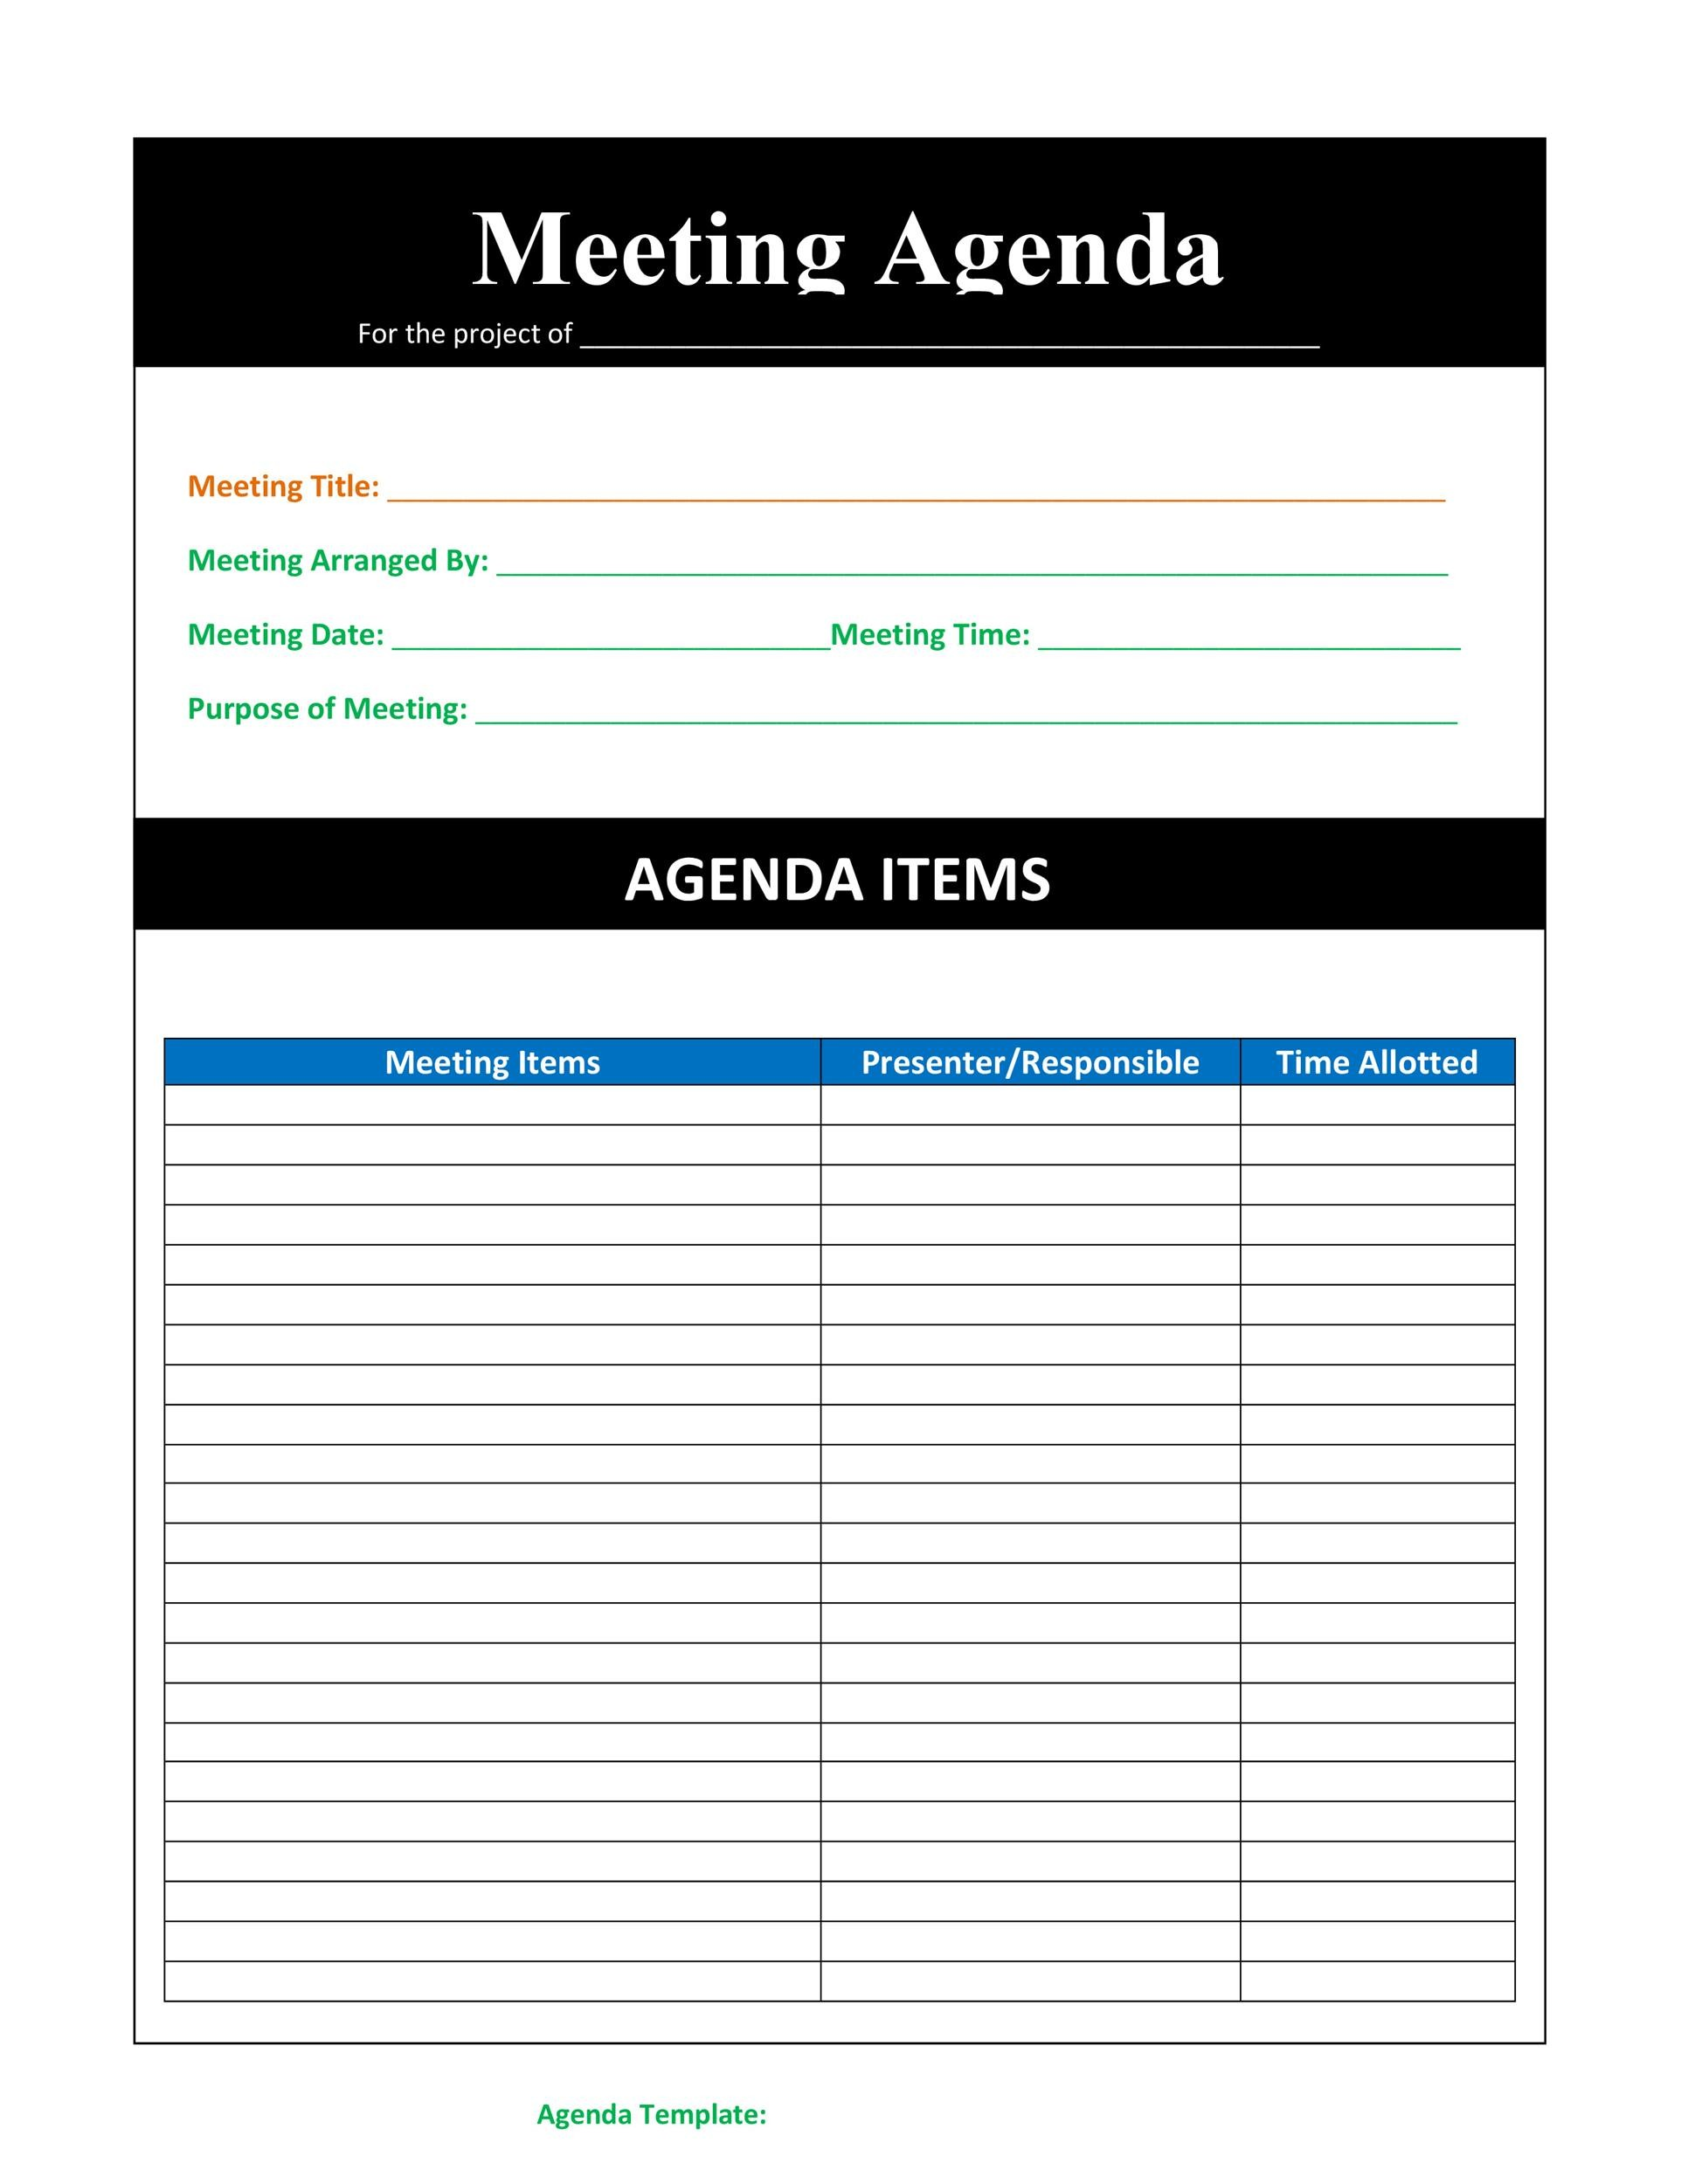 Free Meeting Agenda Template 41